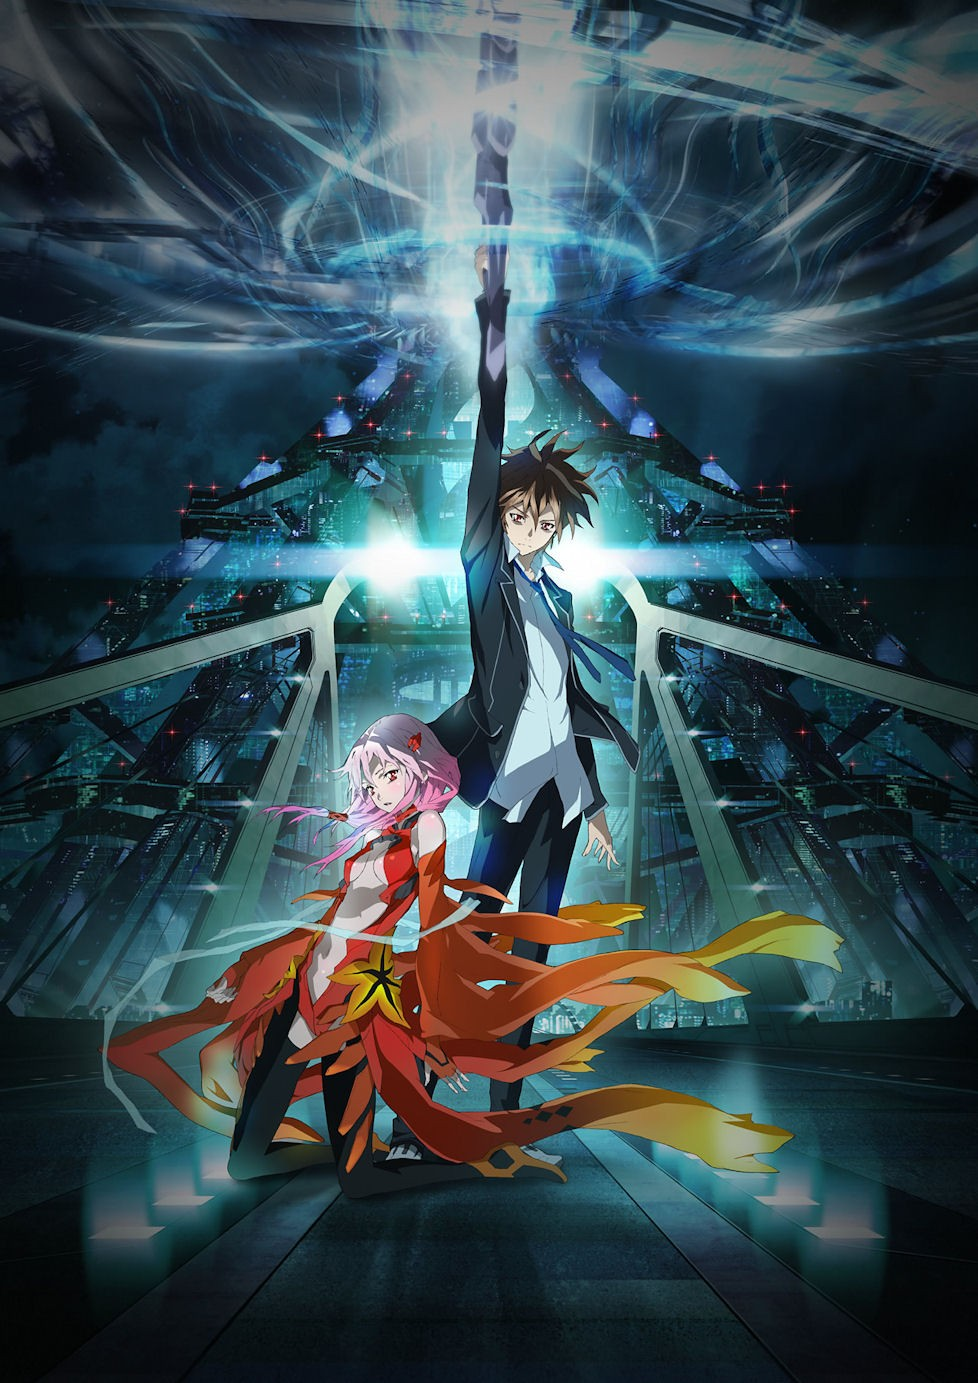 dessin-animé-japonais-guilty-crown-1